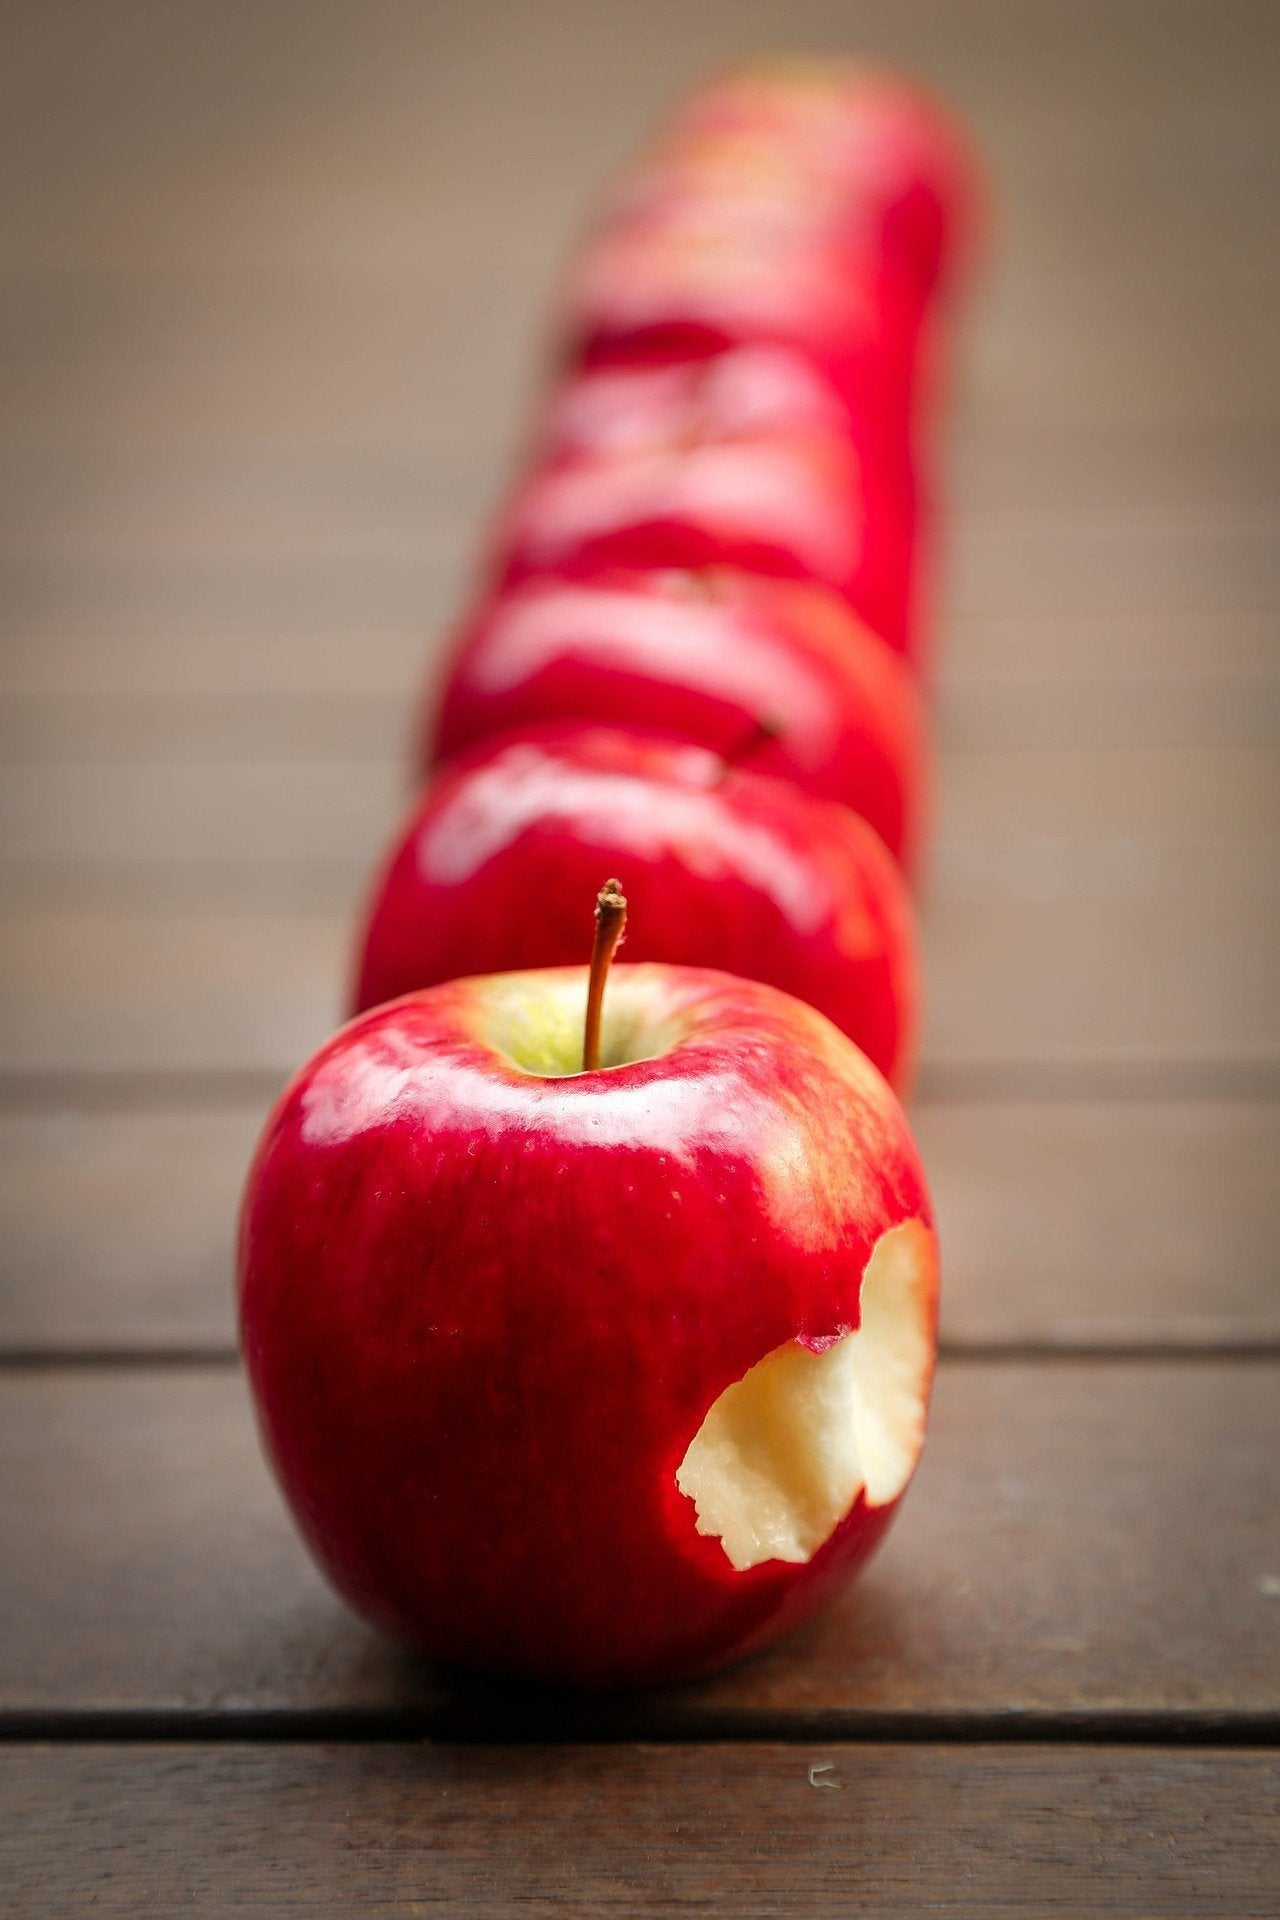 How We Can Use Apple Stem Cells